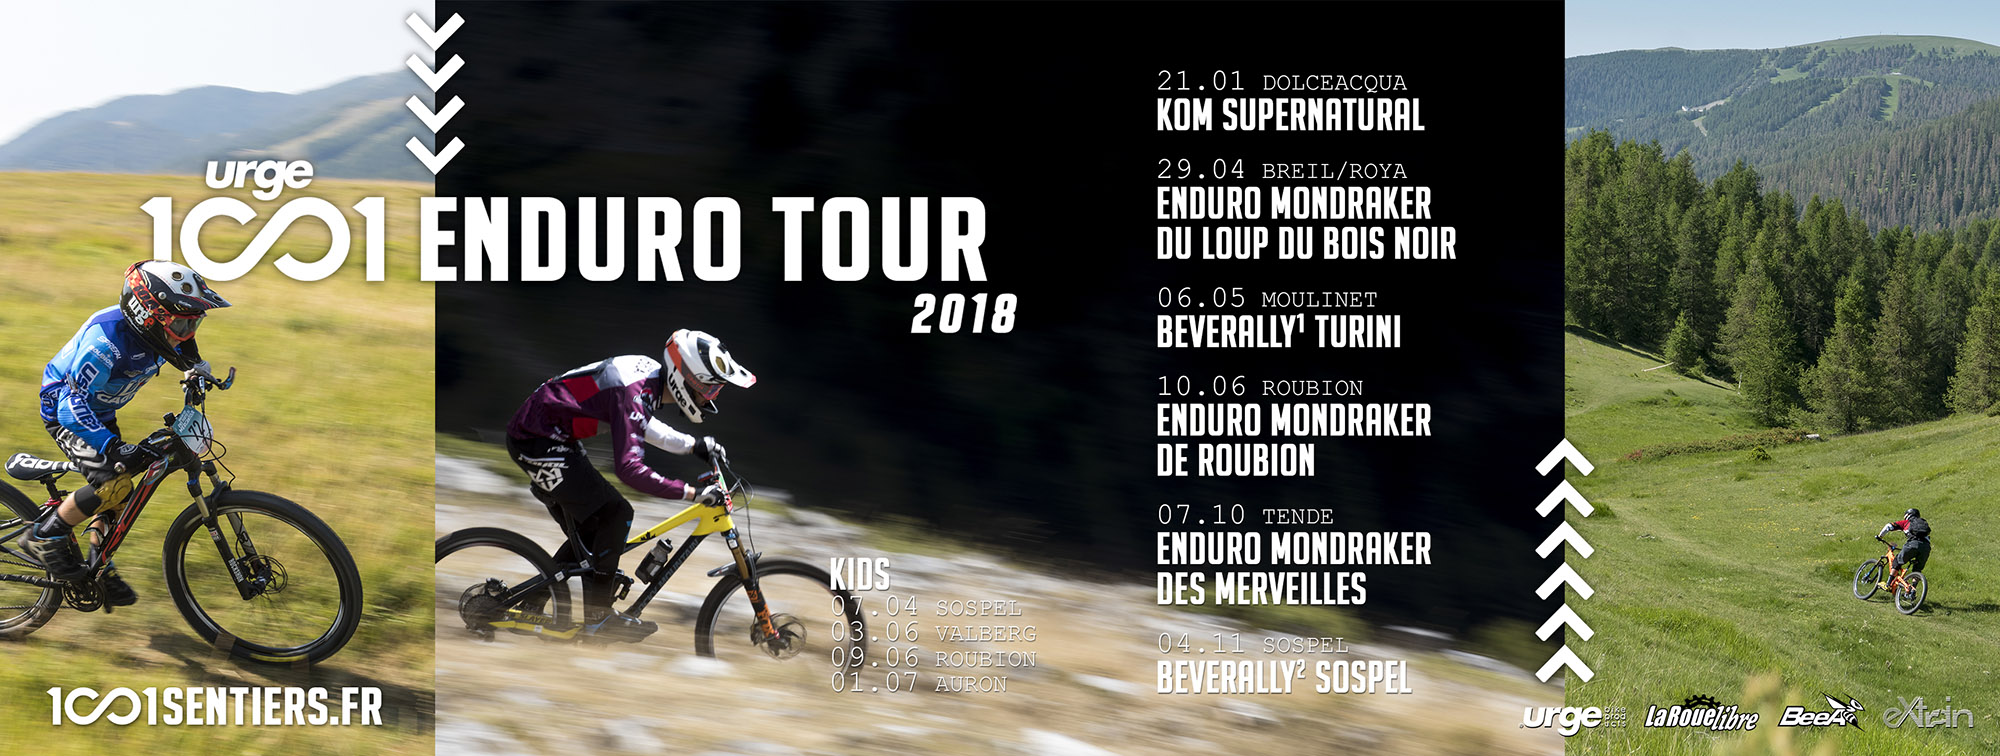 visuel Urge 1001 Enduro Tour 2018